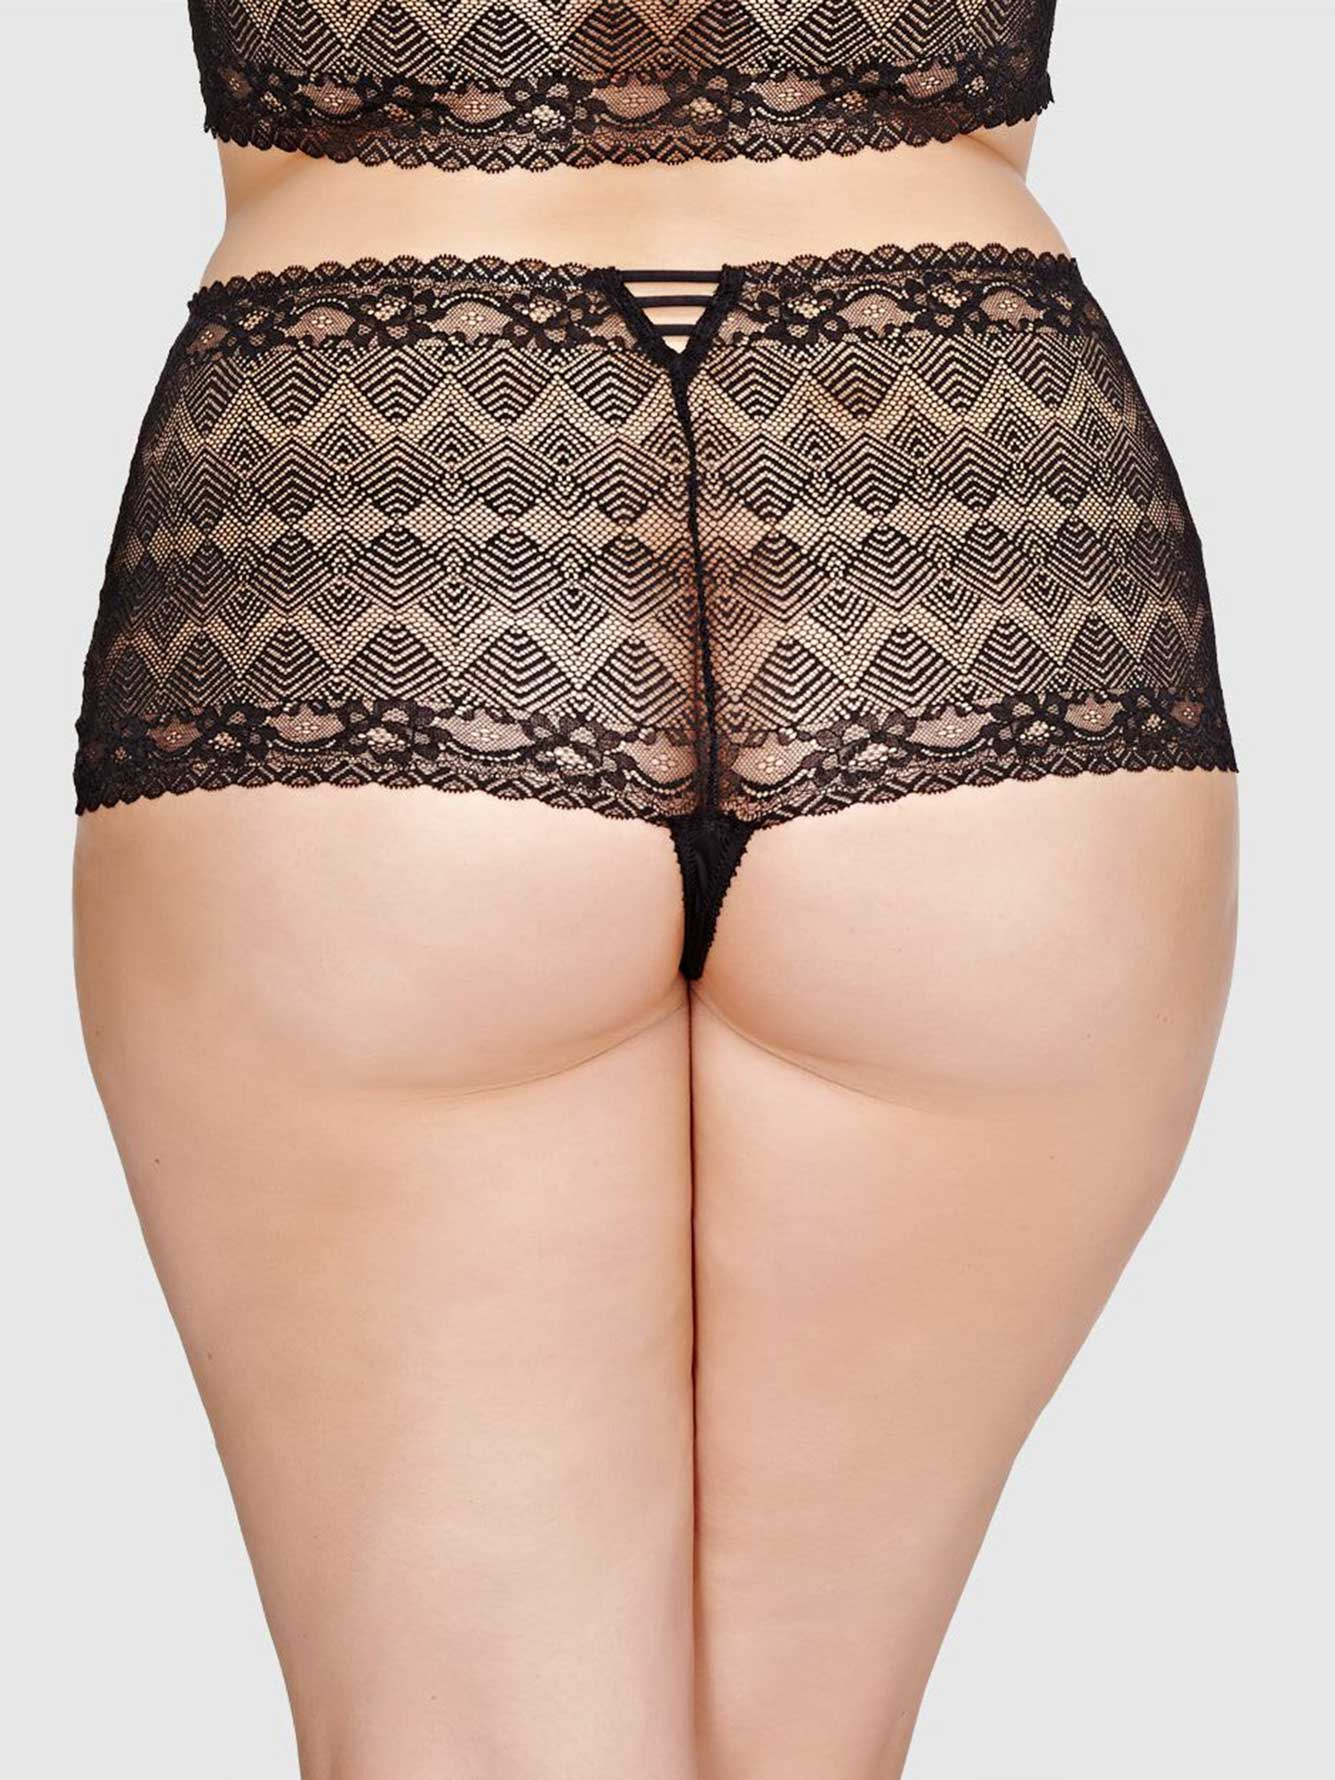 ashley graham lace thong panty | addition elle